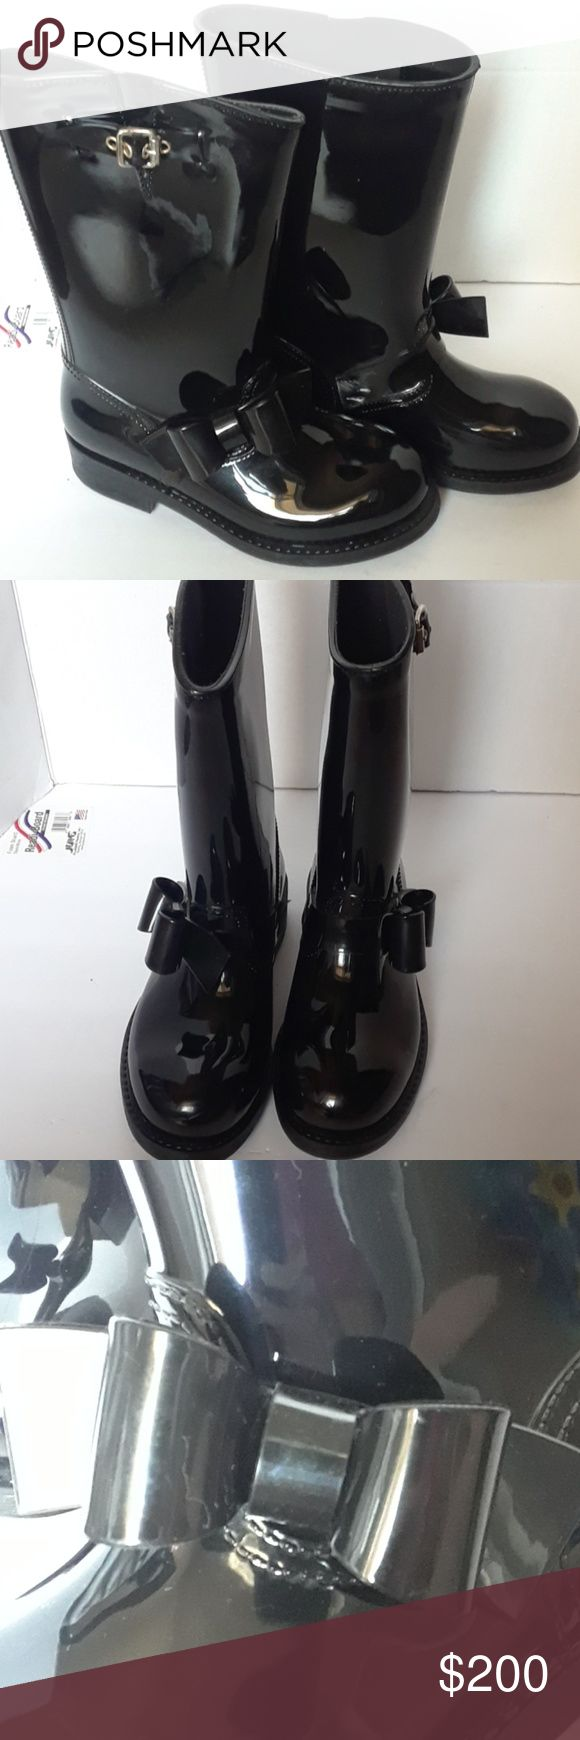 Valentino red black rubber boots size 6 Black Valentino Bow Trim Waterproof Rain Boot (Women) PVC rainboots with bow detail. Made in Italy. Bow detailing. Solid color. Rubber sole. Lined interior. Round toeline Worn a couple of times has a few small scratch marks on the inner side of them please look at picture no box paid over $300 app for all offers sorry no trades Valentino Garavani Shoes Winter & Rain Boots